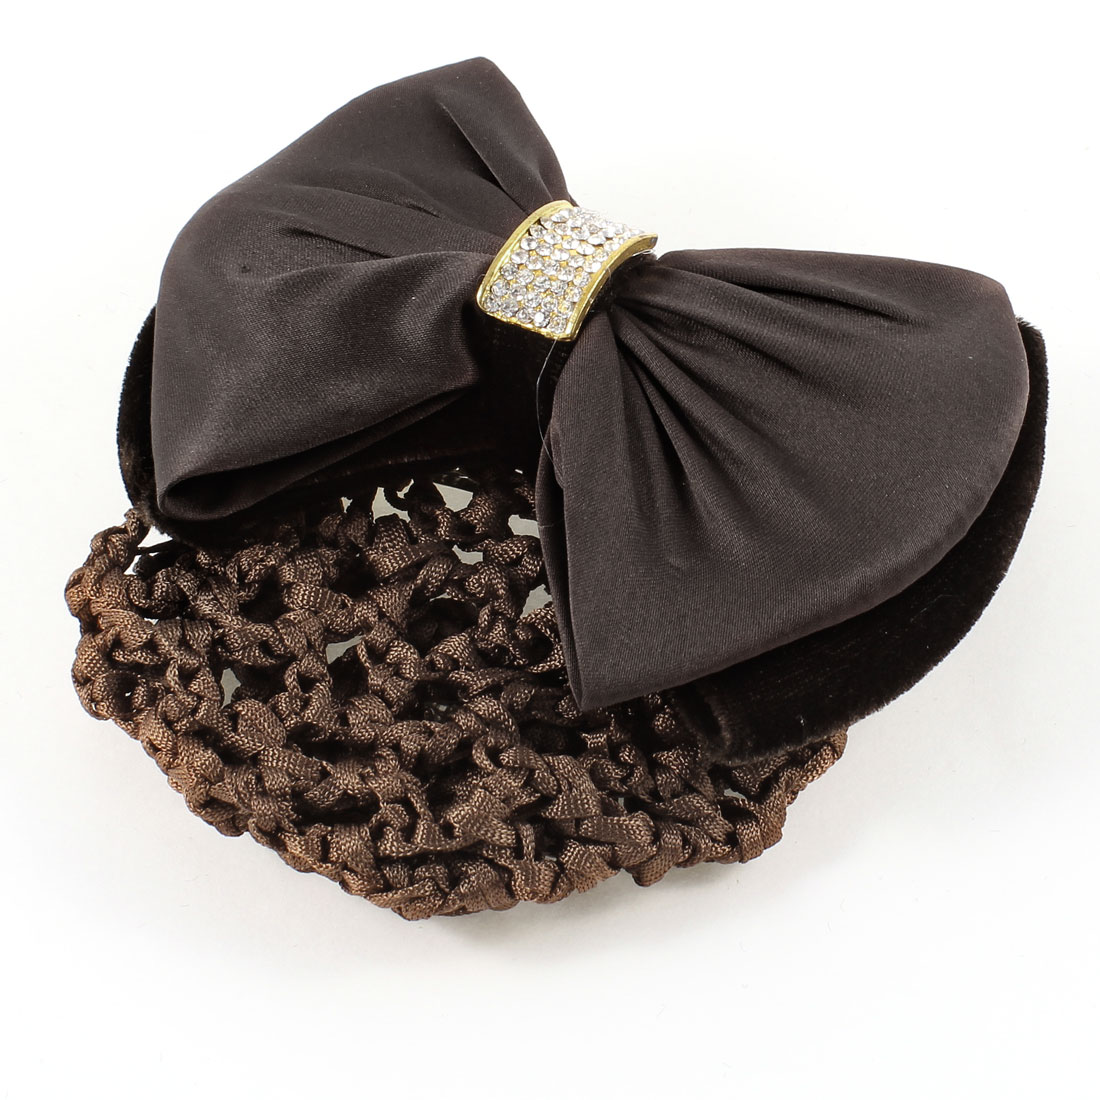 Rhinestones Bow Tie Detail Snood Net Barrette Hair Clip Bun Cover Dark Brown